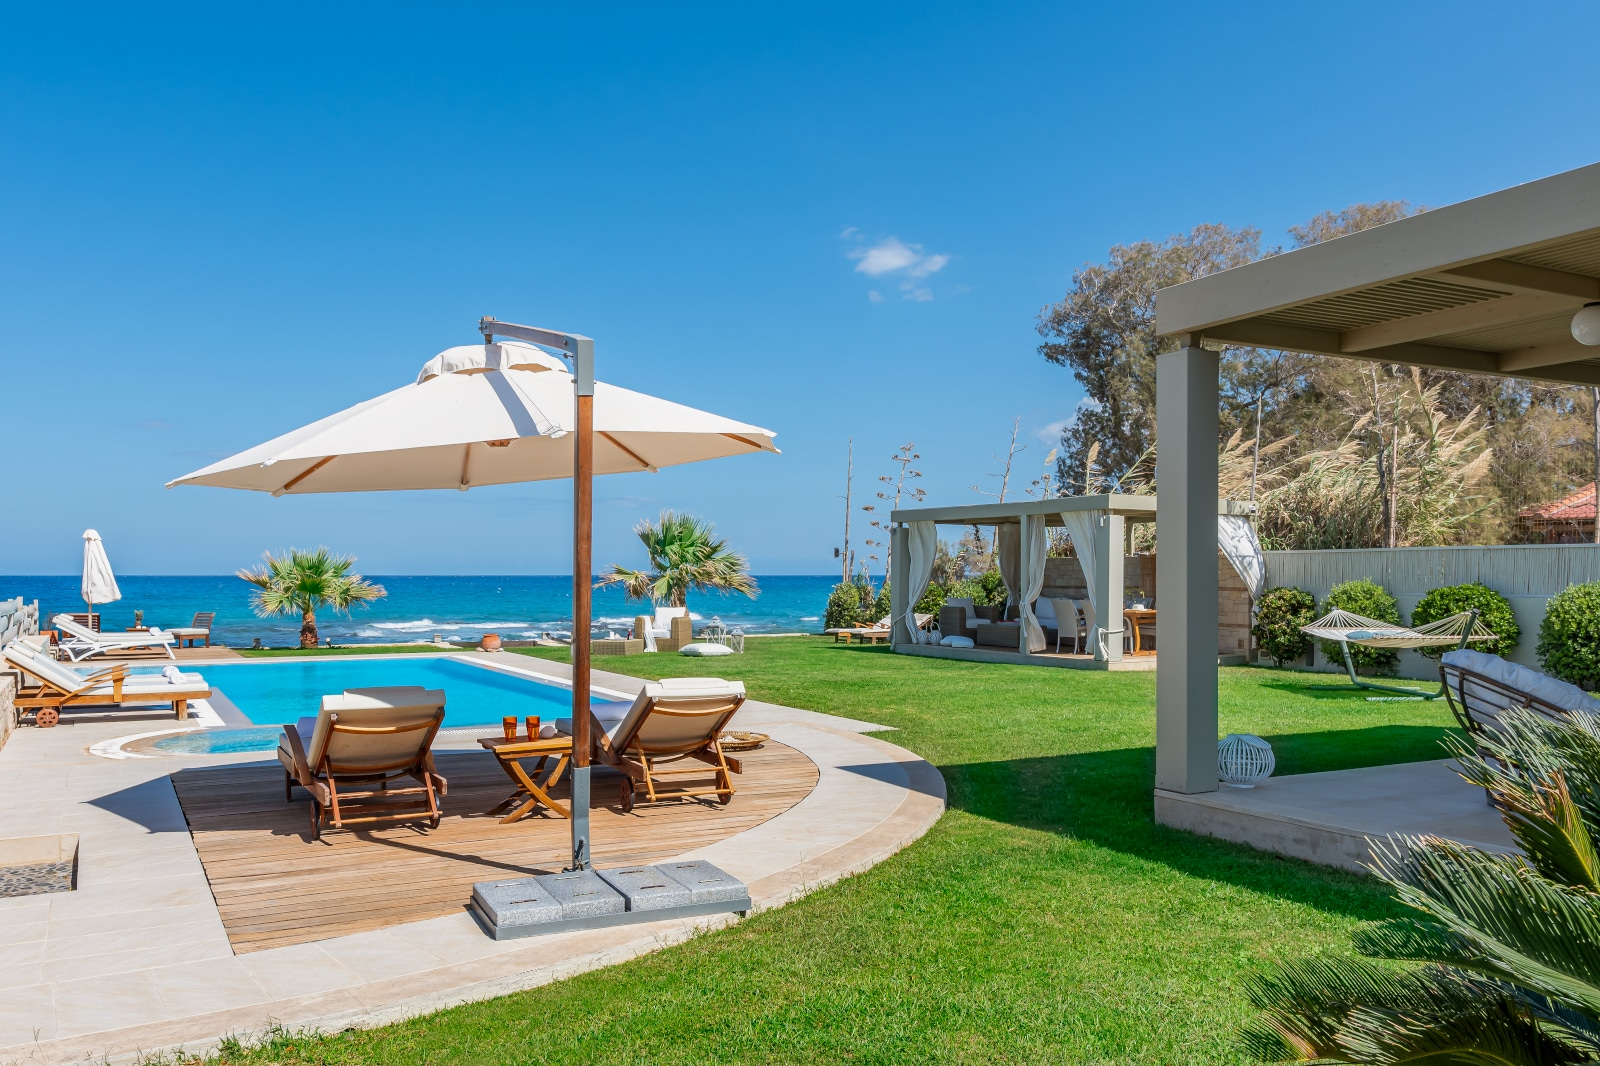 Property Image 2 - Beachfront Captivating Villa with private heated pool, jacuzzi and skyline views,1' from shops